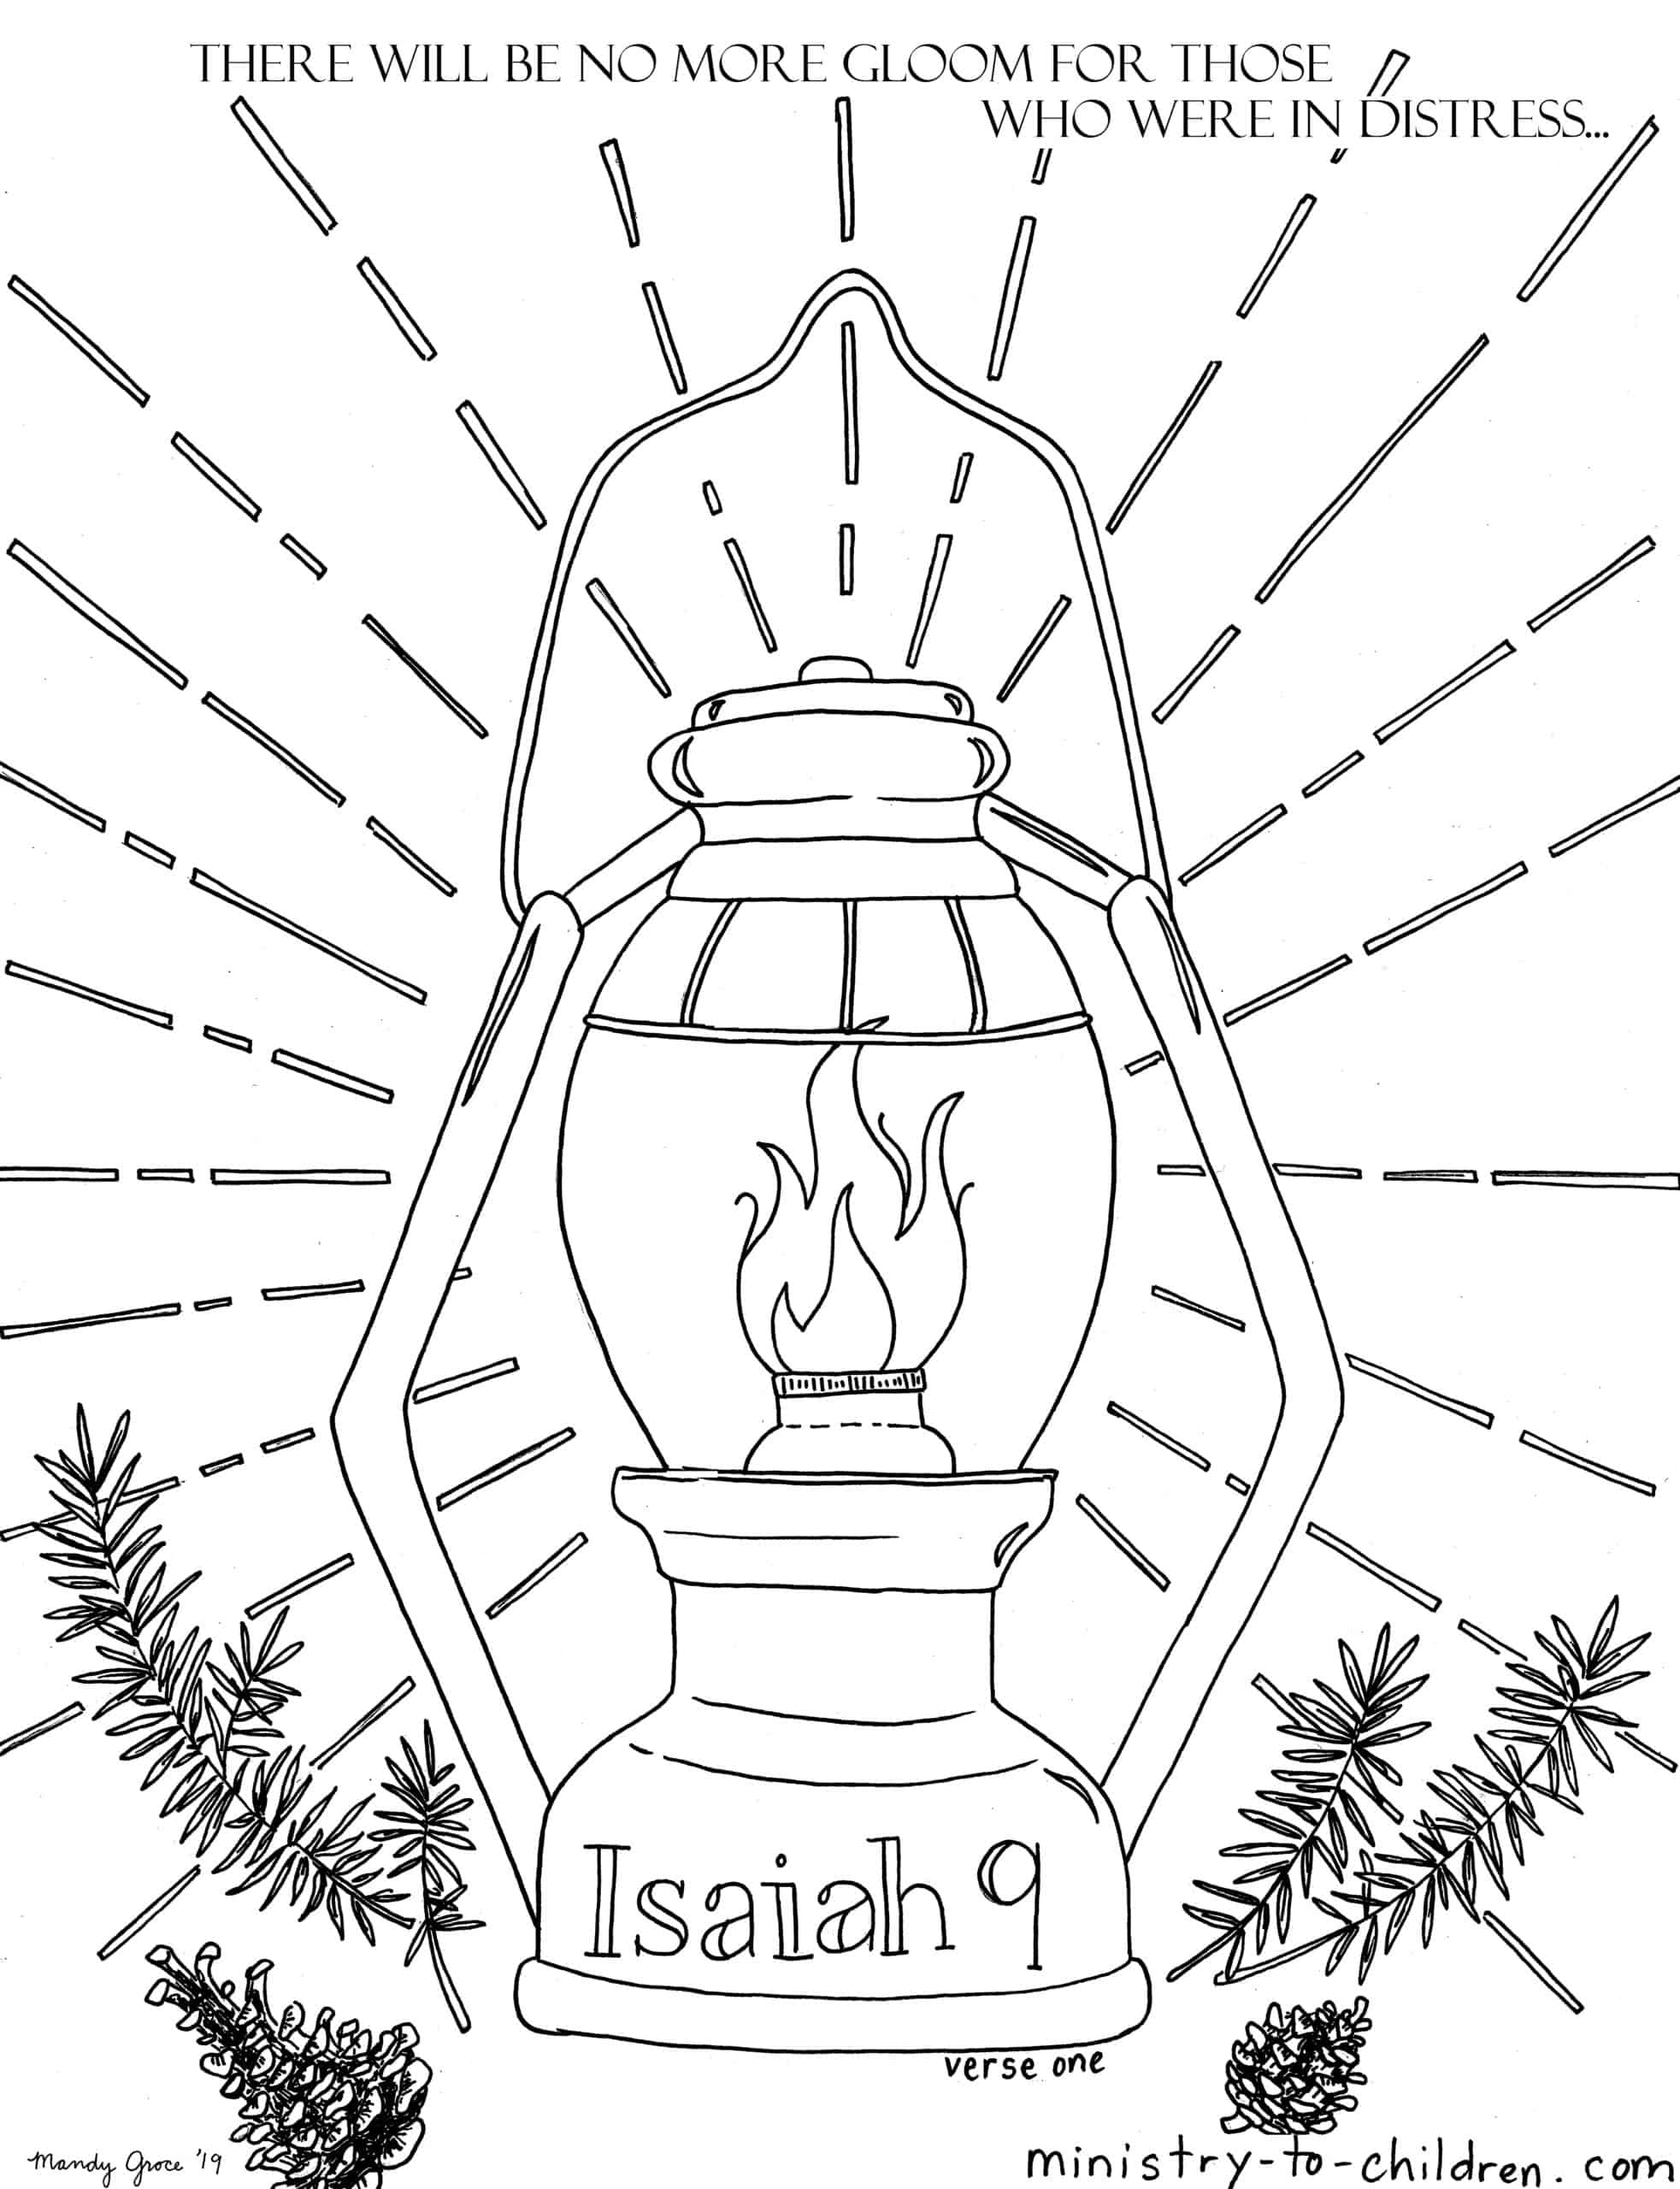 Isaiah 9 Coloring Pages People In Darkness Have Seen A Great Light Ministry To Children